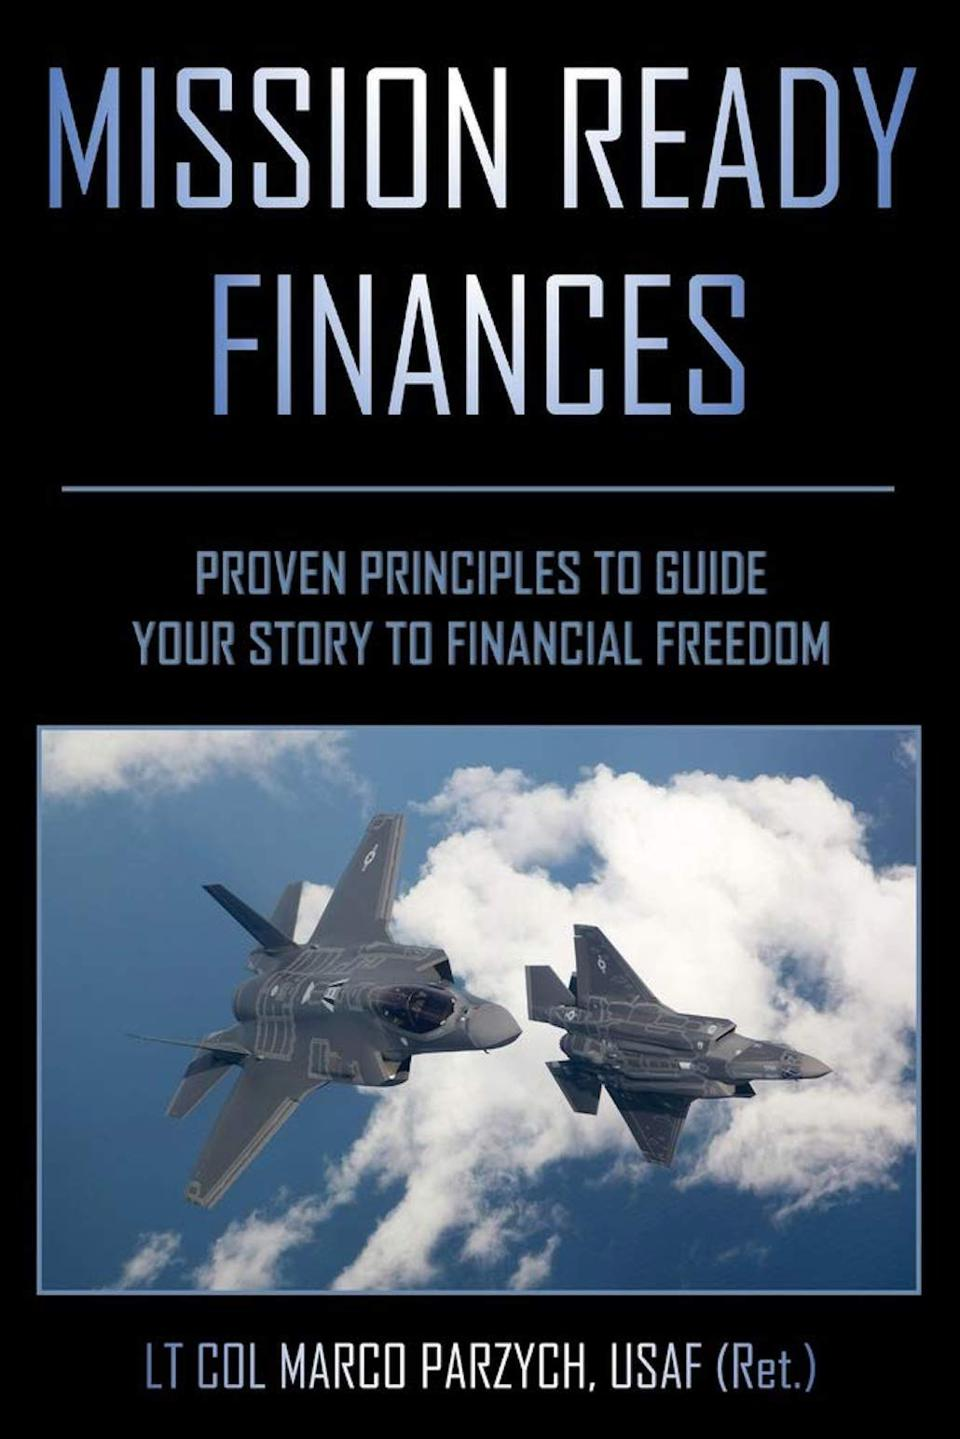 Mission Ready Finances: Proven Principles to Guide Your Story to Financial Freedom by Marco Parzych